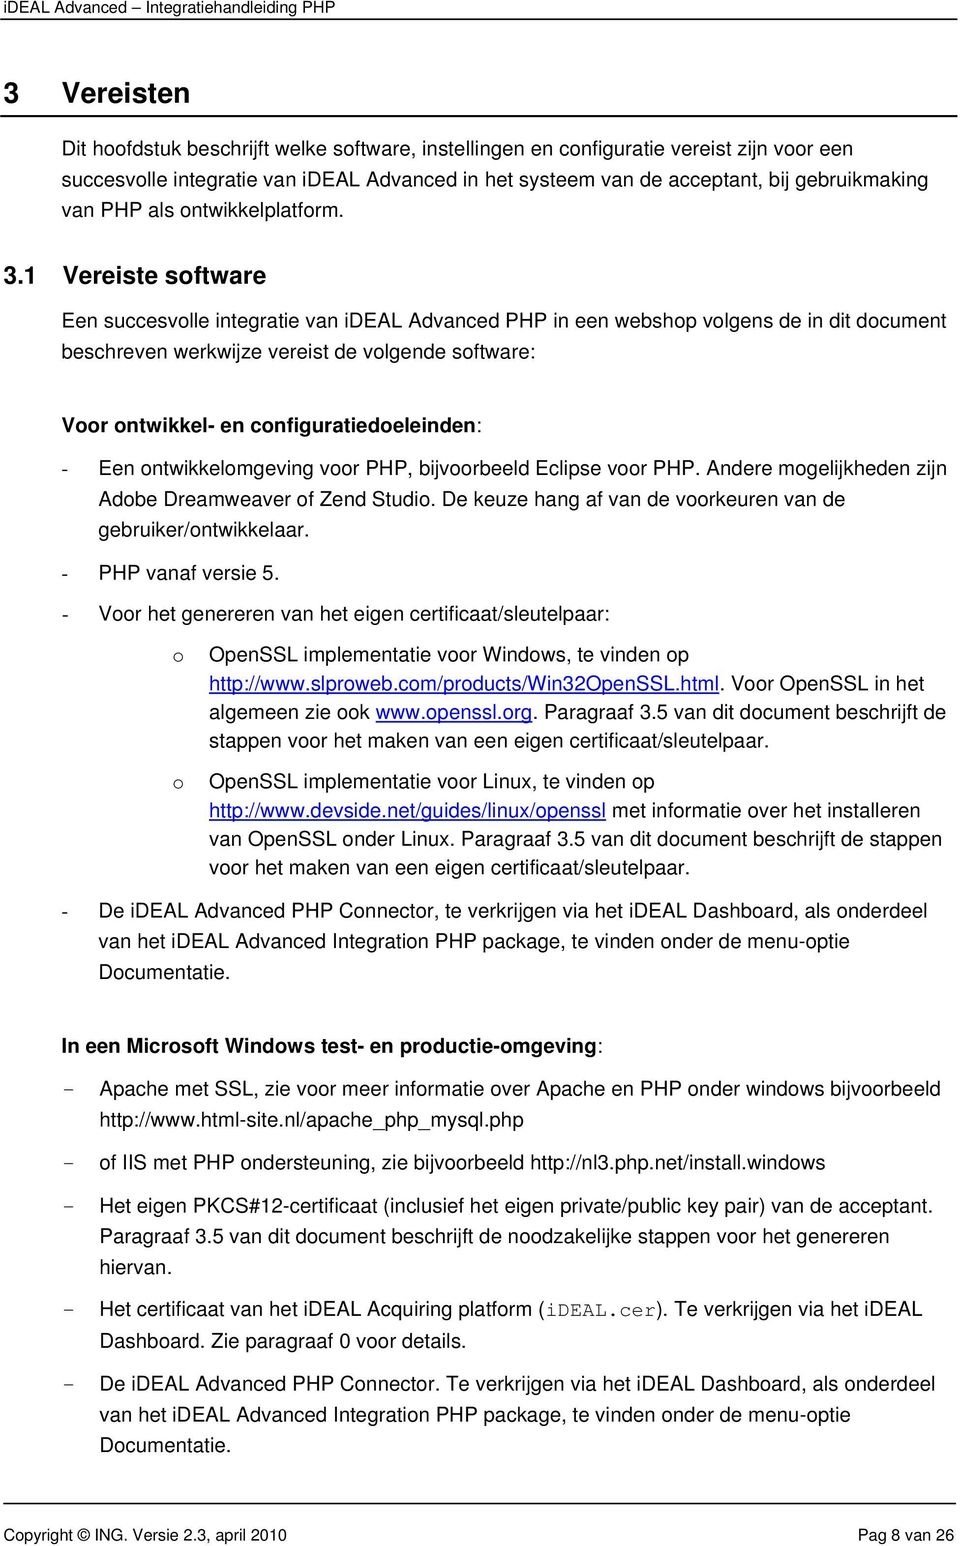 1 Vereiste sftware Een succesvlle integratie van ideal Advanced PHP in een webshp vlgens de in dit dcument beschreven werkwijze vereist de vlgende sftware: Vr ntwikkel- en cnfiguratiedeleinden: - Een